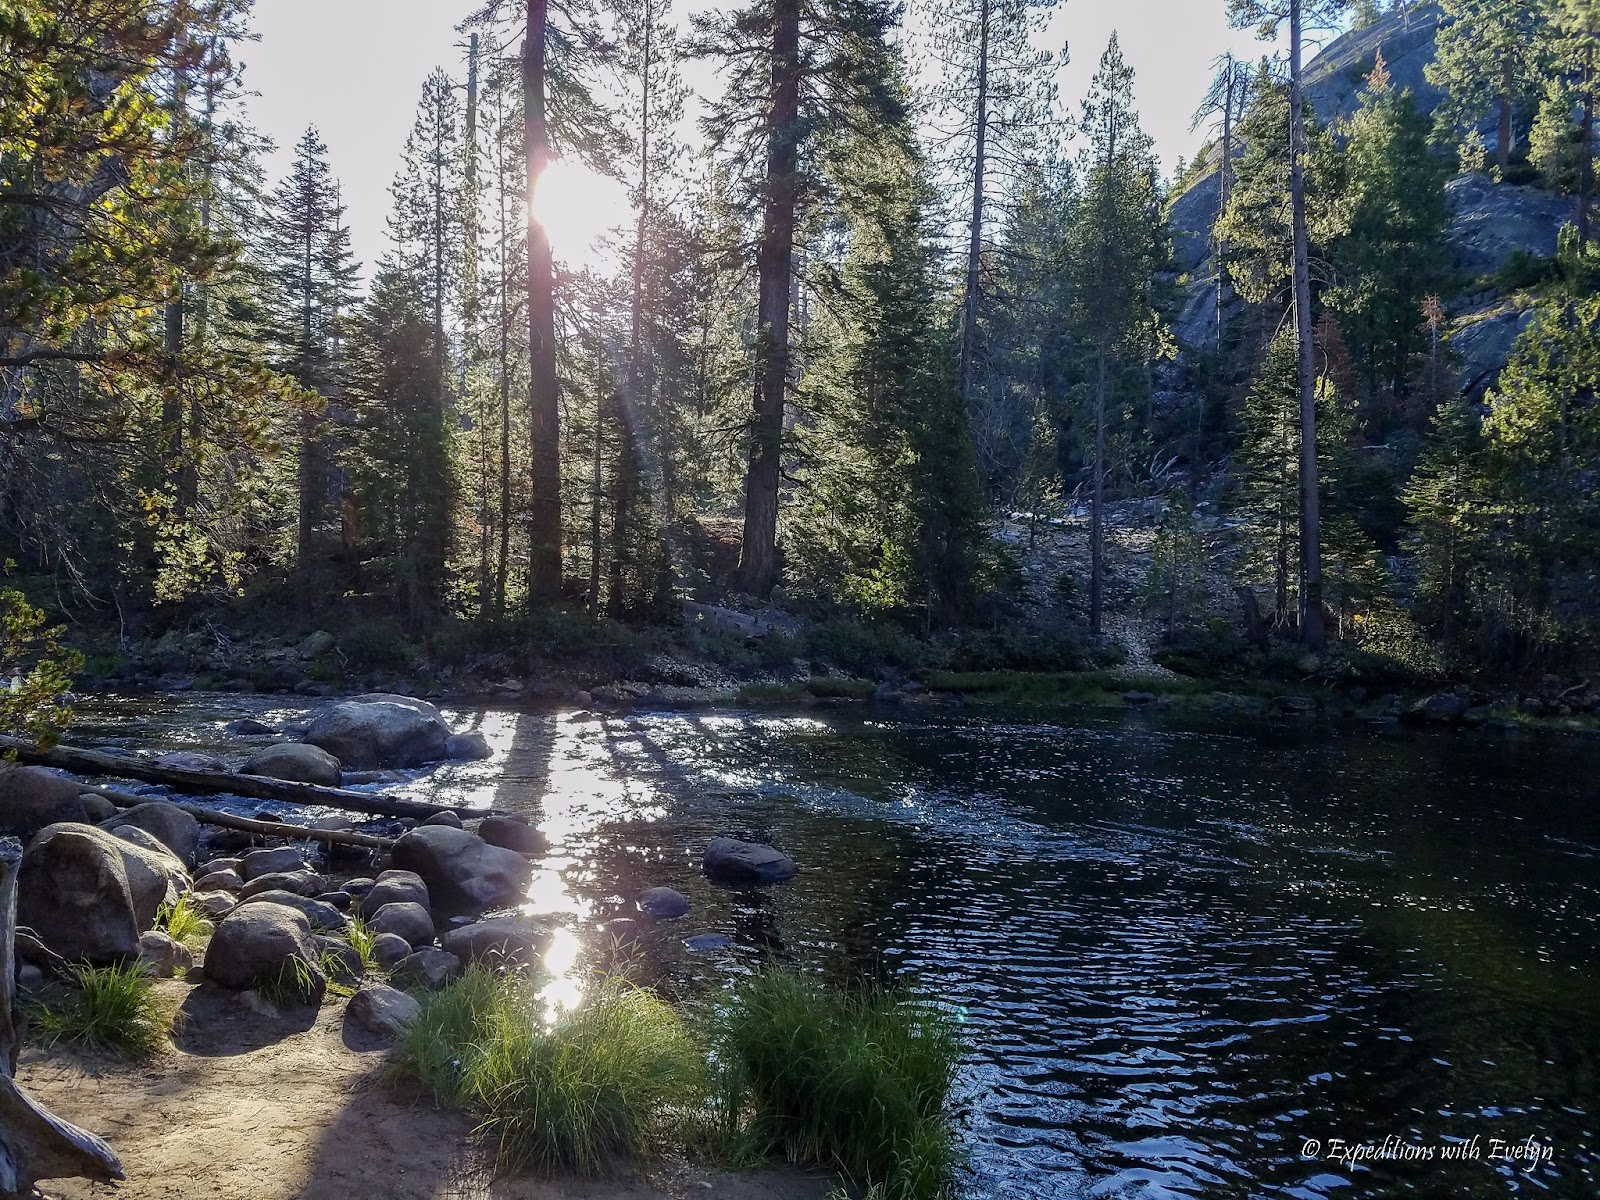 The Merced River calmly flows through the forest as the sun rises through the trees illuminating the rocks on the river bank.